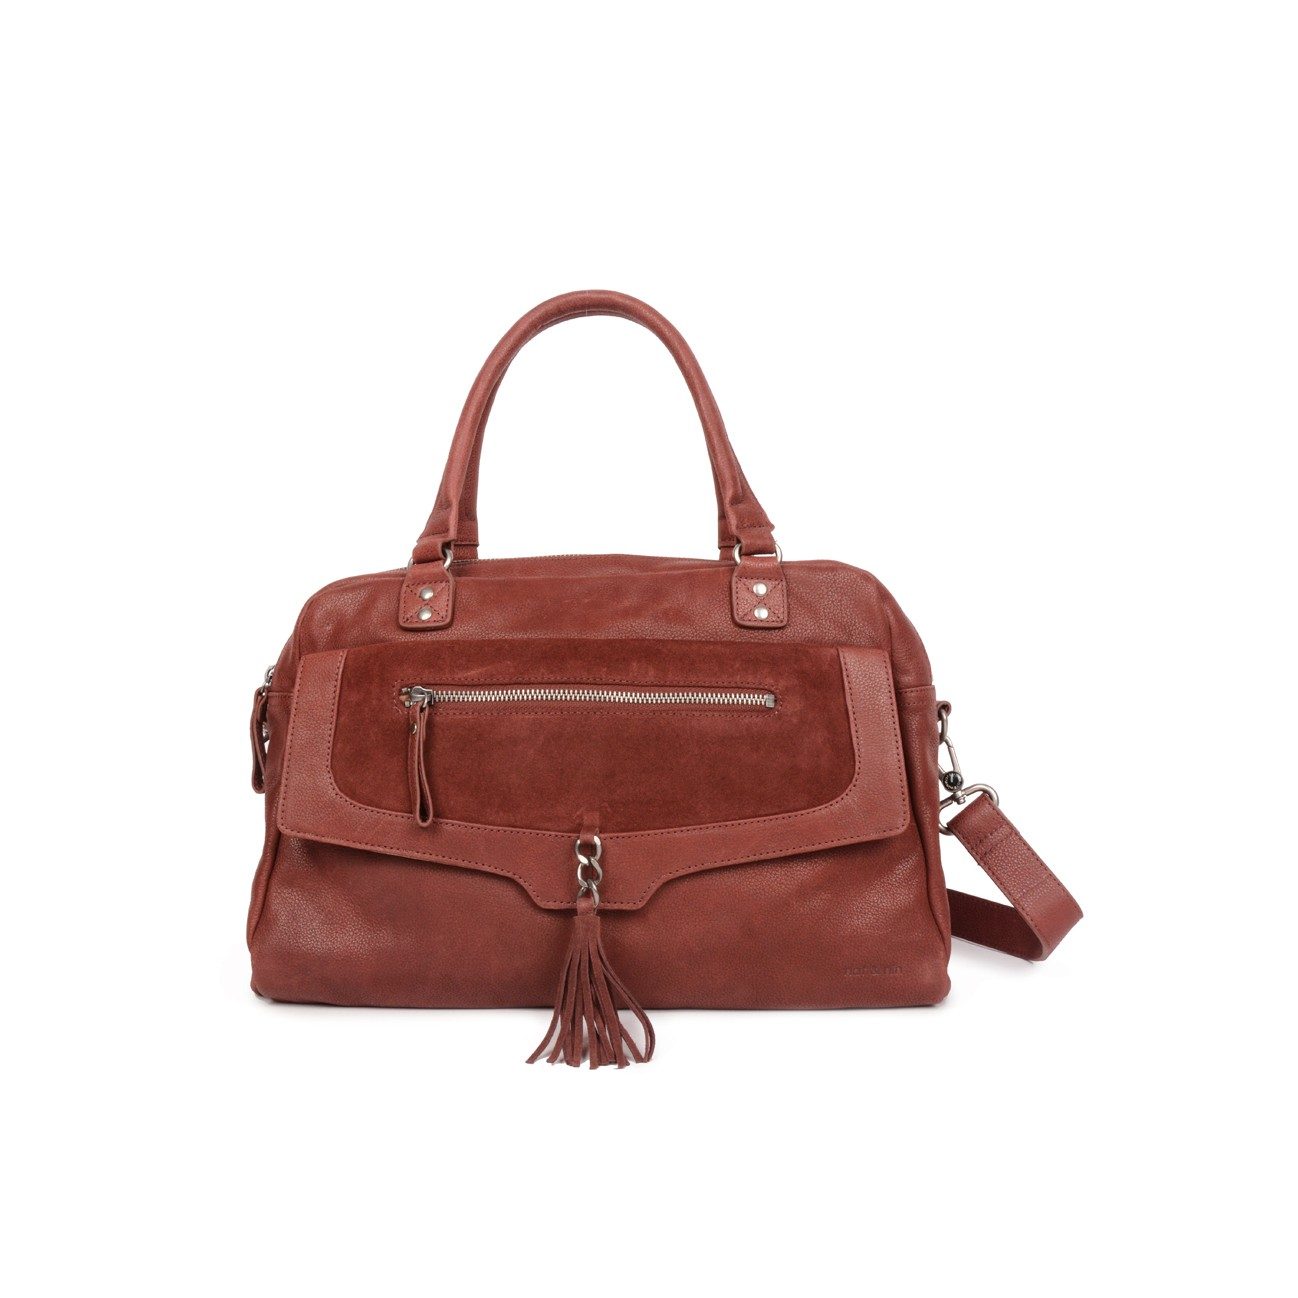 BONNIE – Grand sac femme en cuir, deux compartiments 46408f8a36a